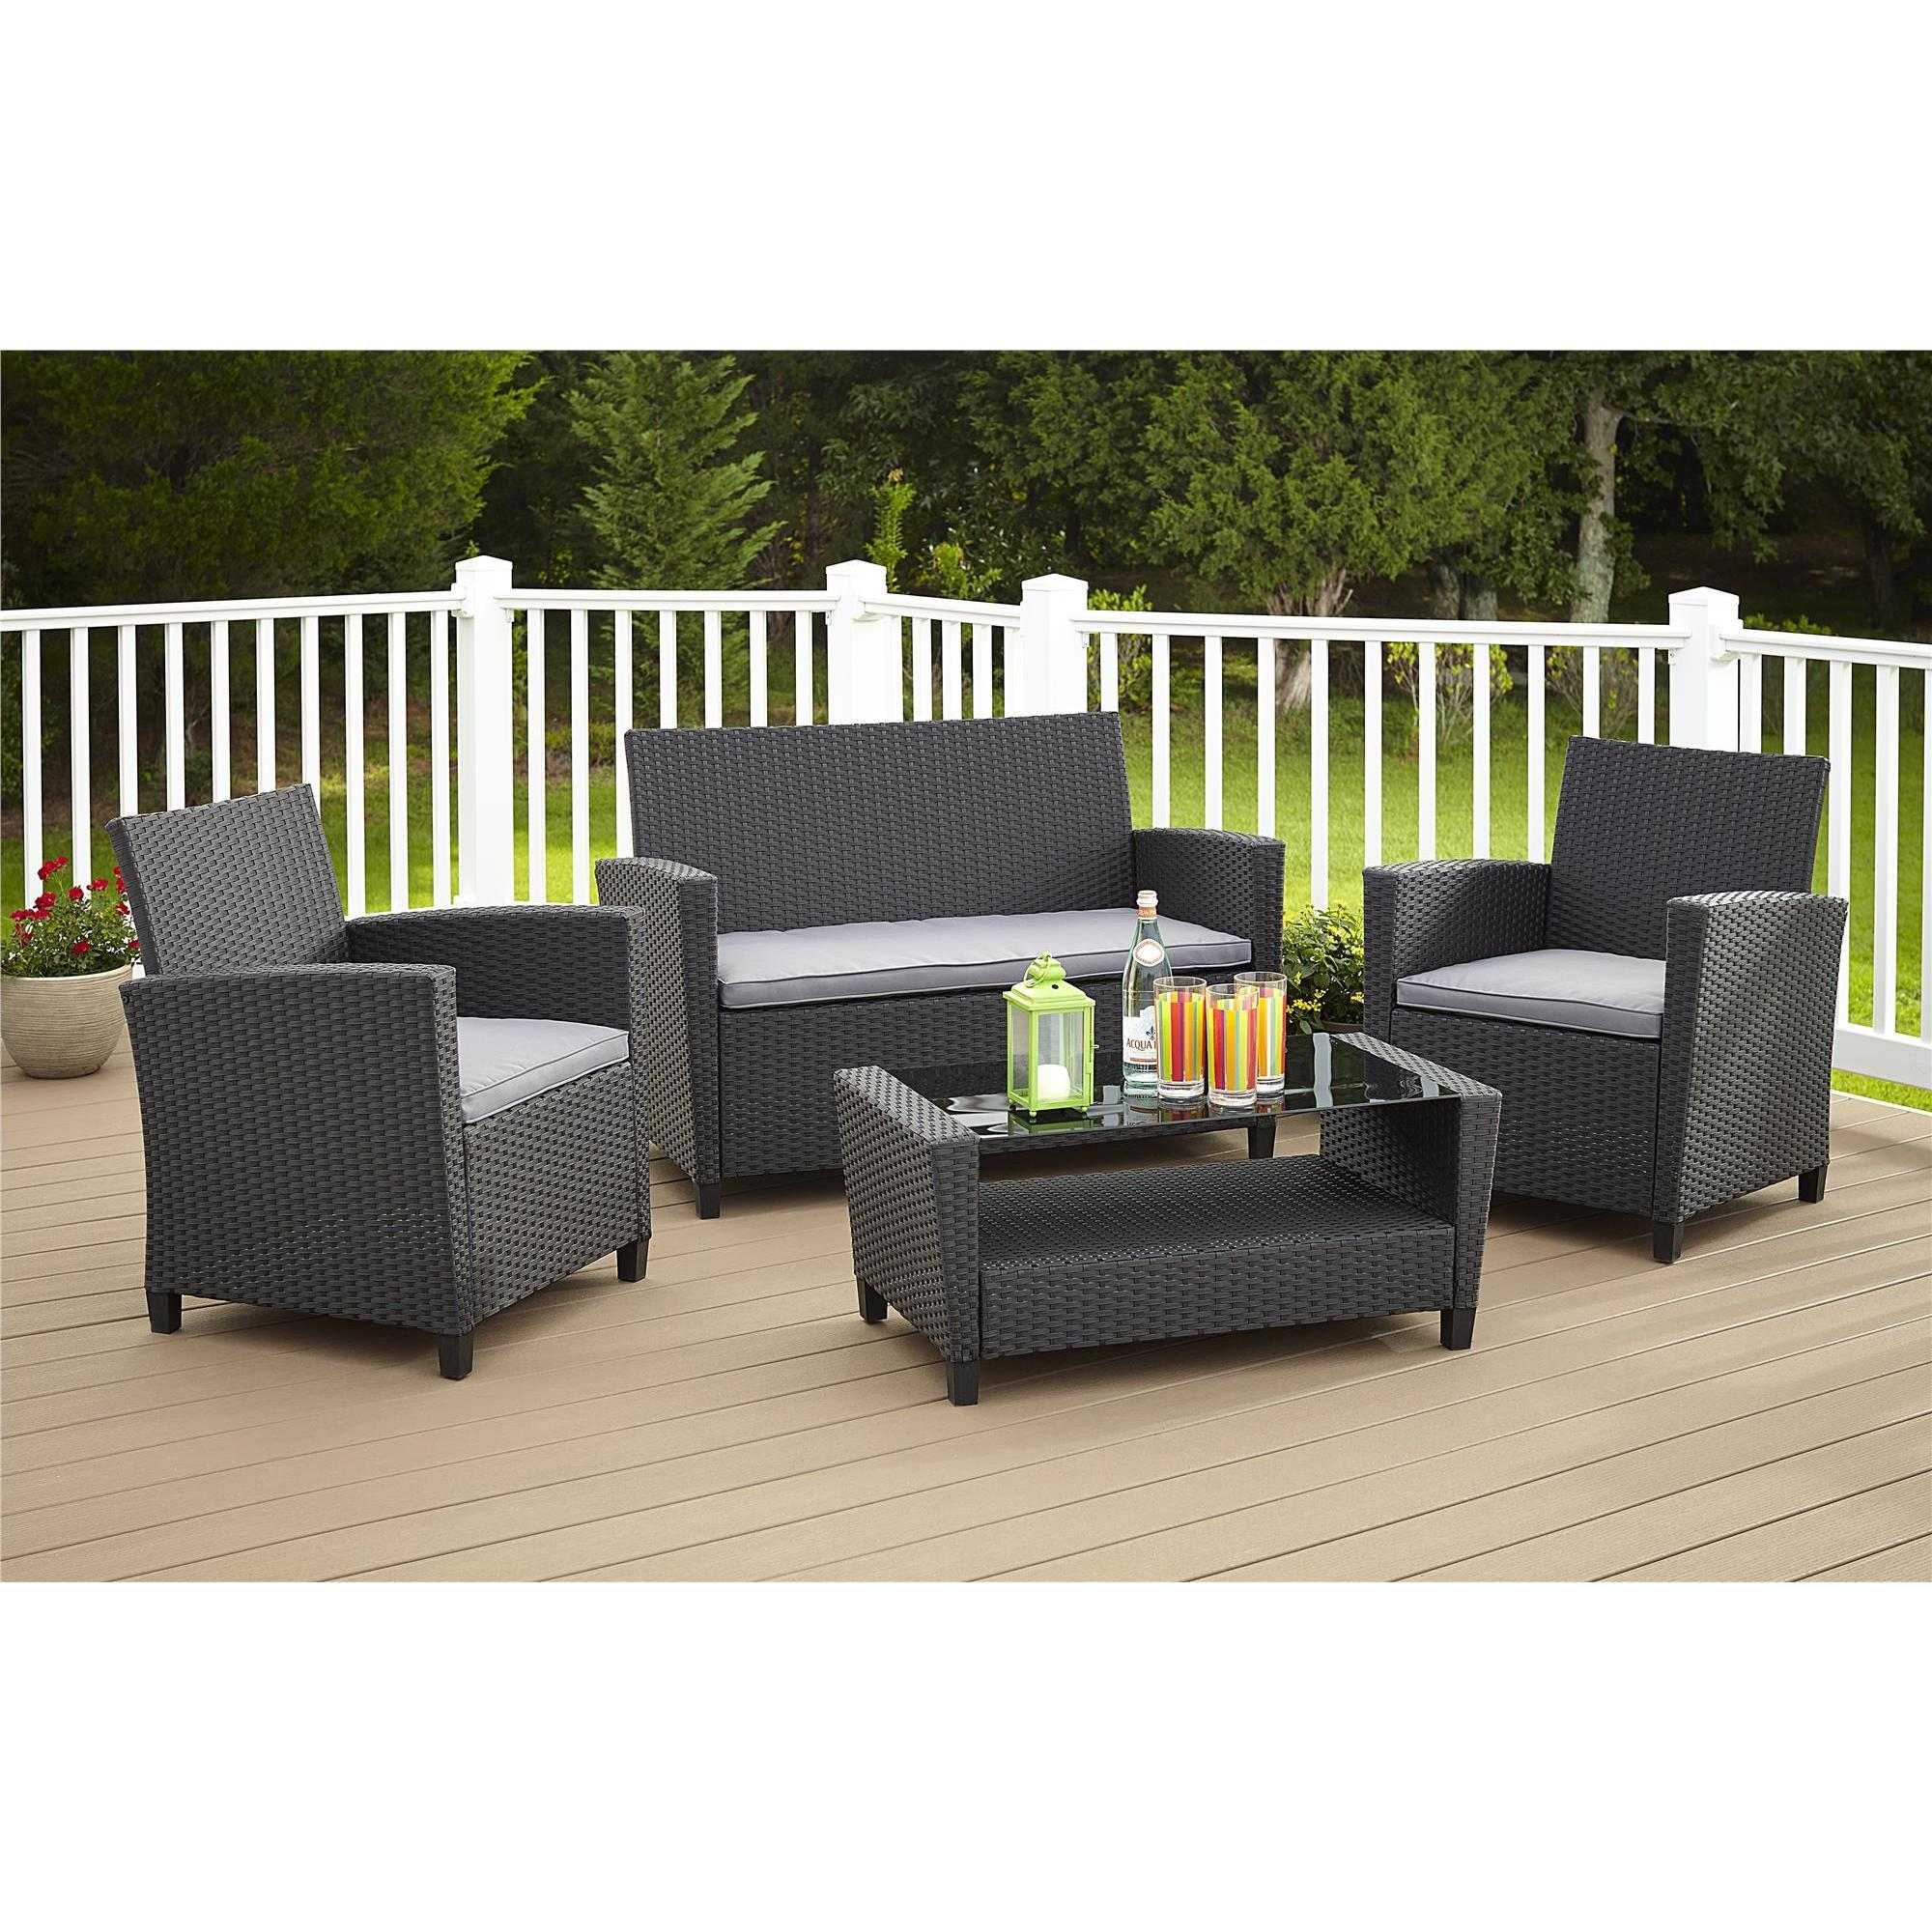 Avenue Greene 4 Piece Resin Wicker Deep Seating Patio Conversation Set - Thumbnail 0